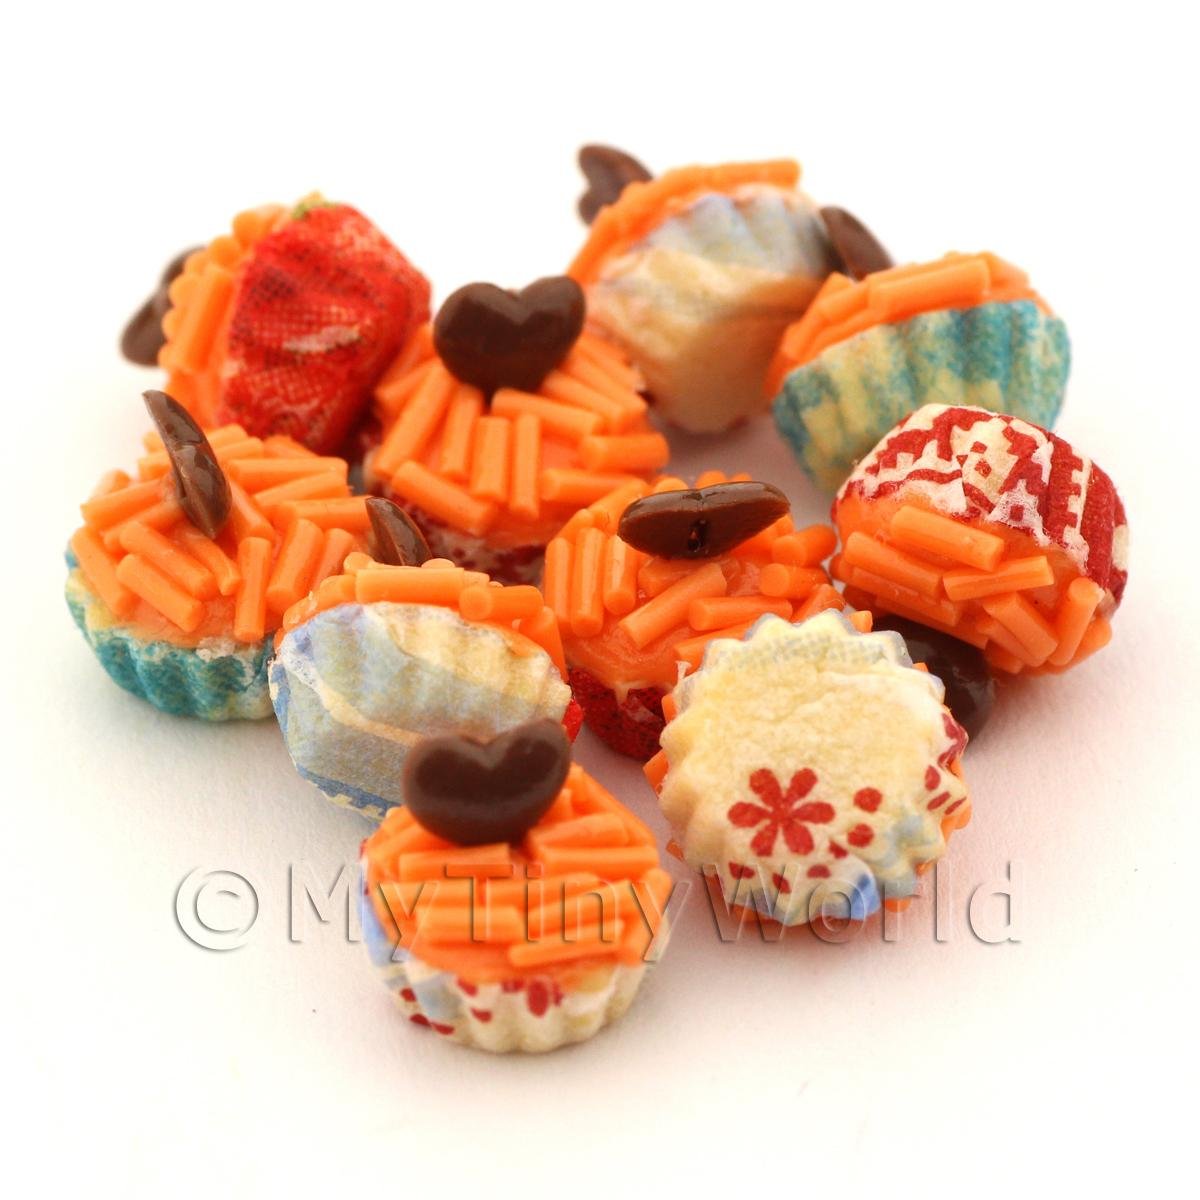 Miniature Orange Sprinkle With Choc Heart Cupcake With Mixed Colour Paper Cups